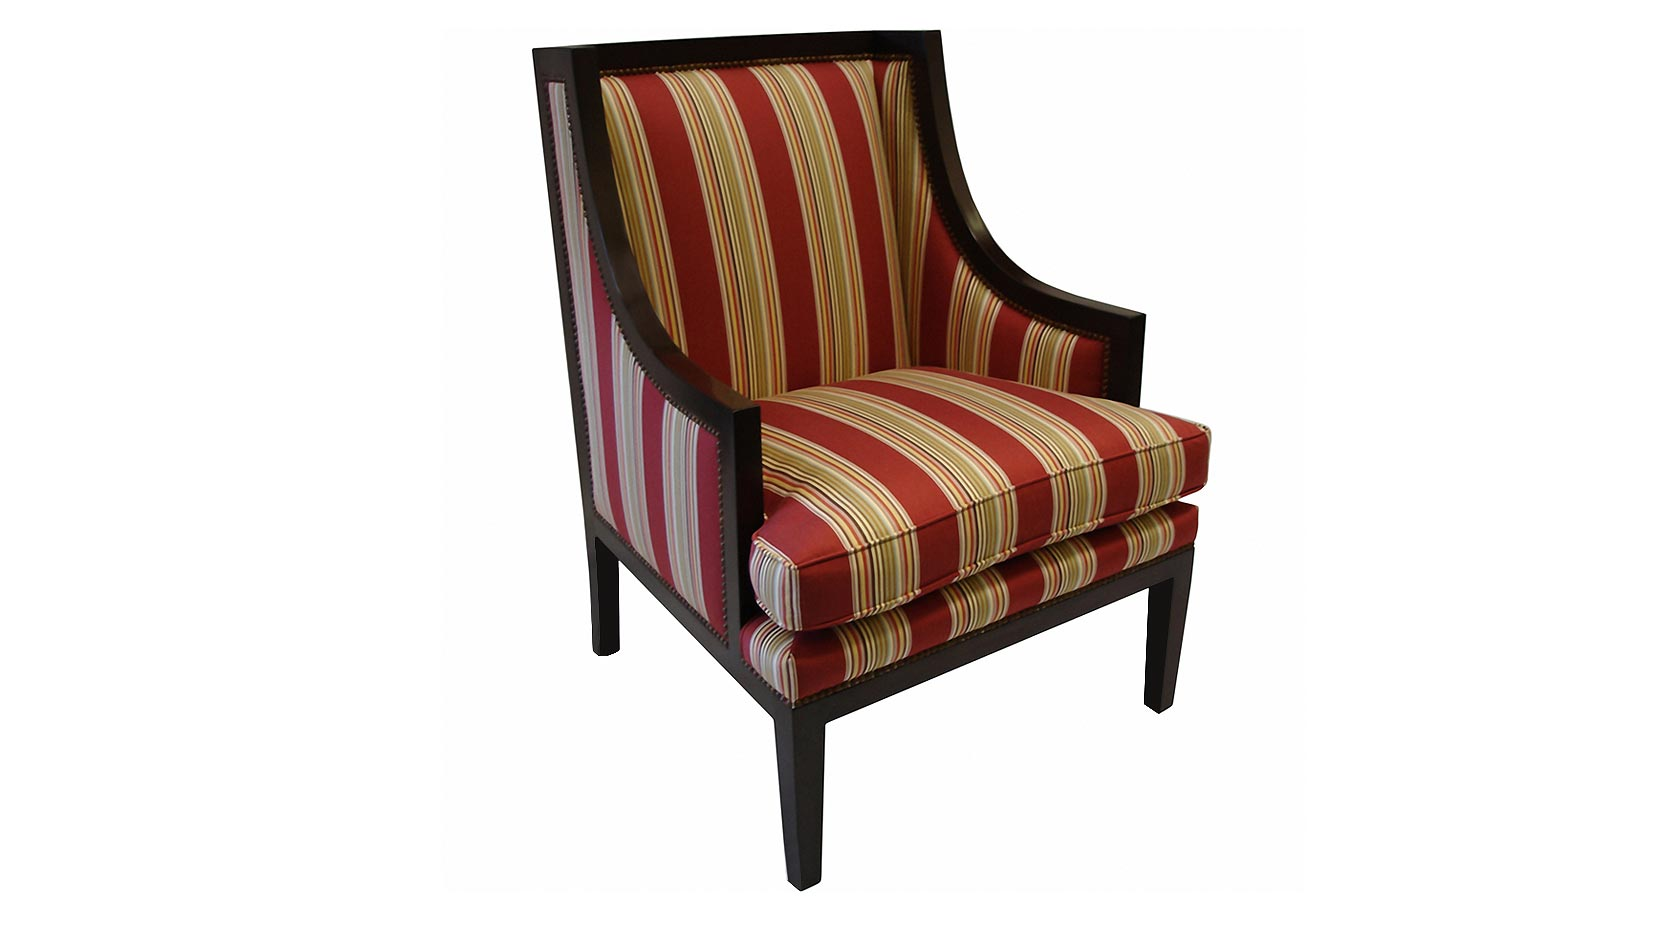 Fairbanks Lounge Chair